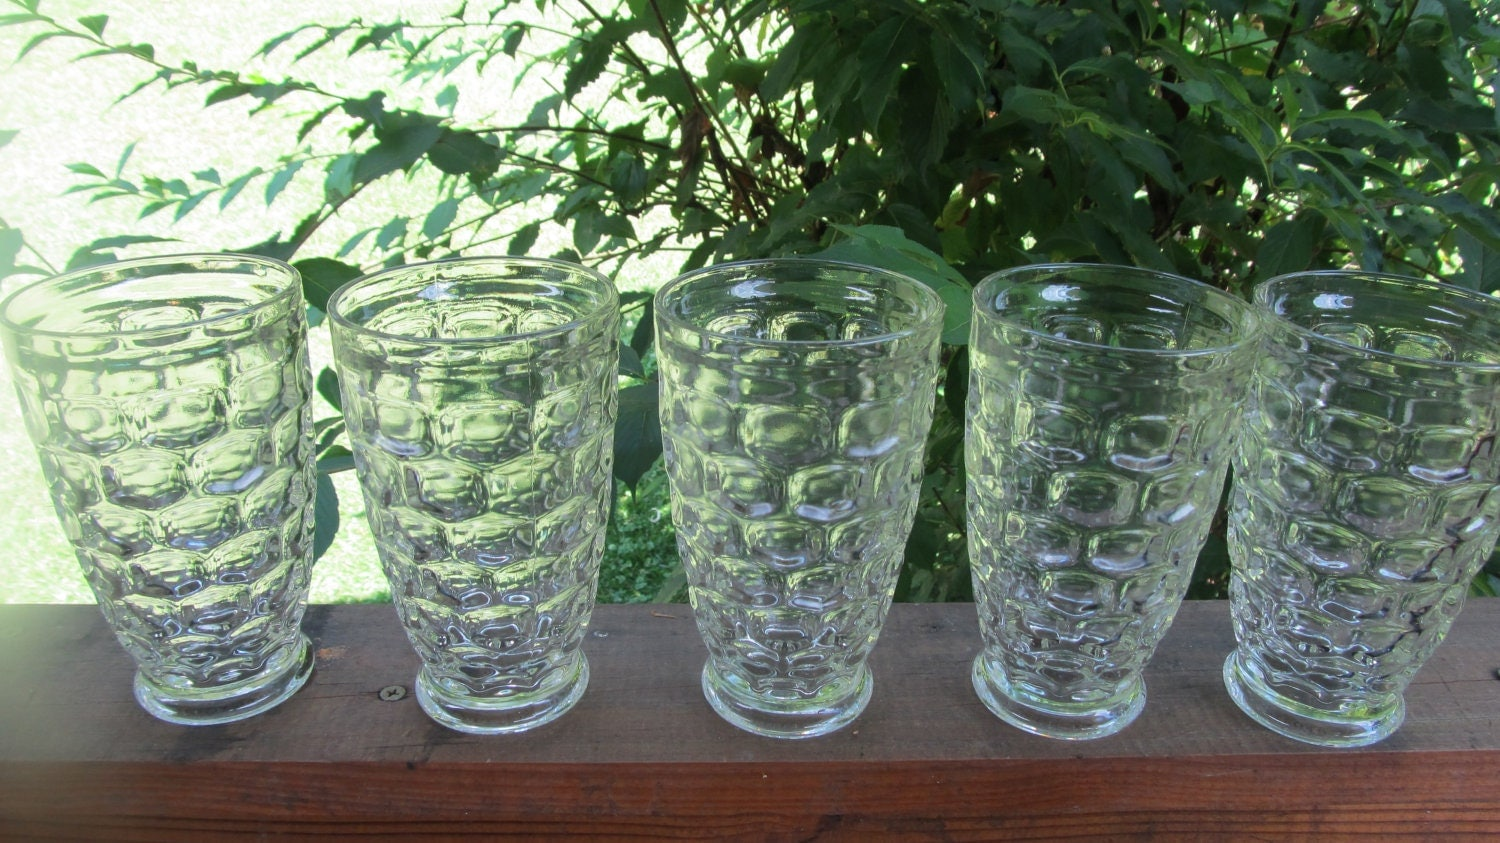 Vintage glasses with bubble inside